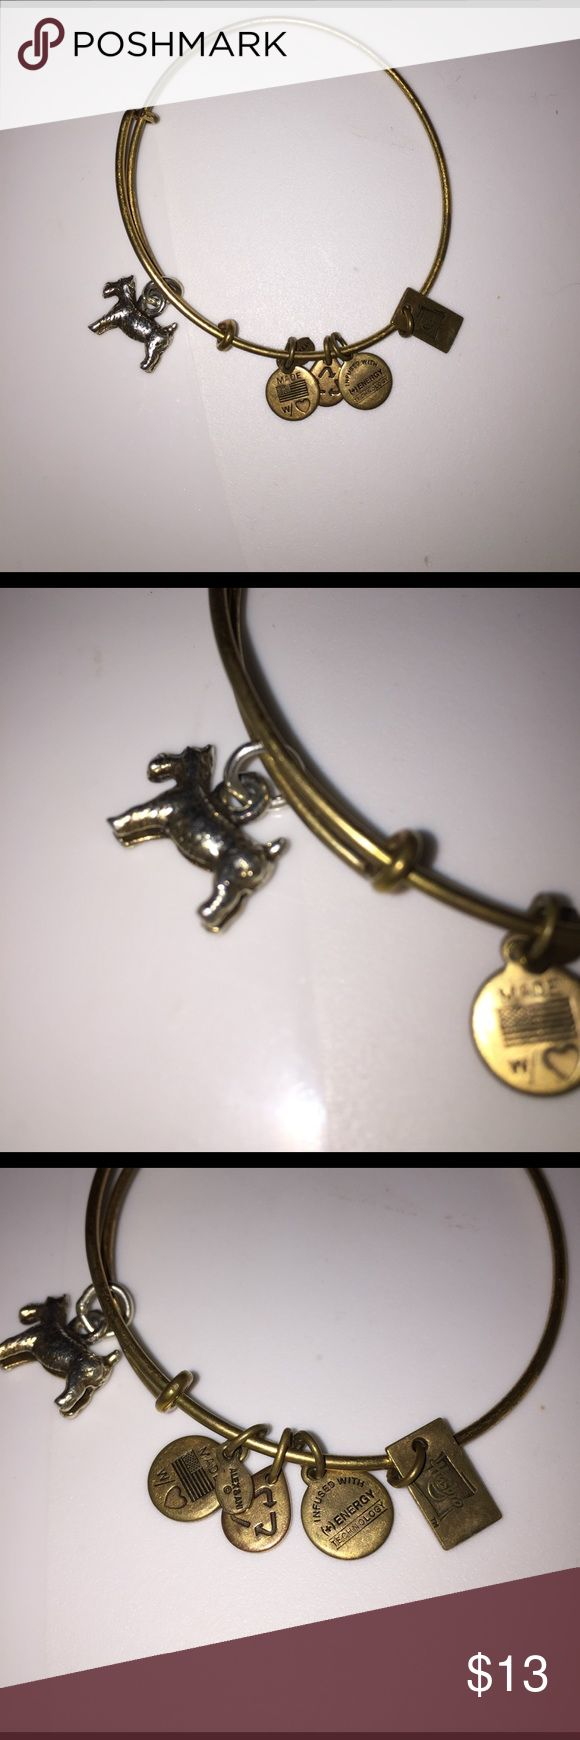 Limited Alex and Ani Bangle With Charms This is a super cute alex and ani bracelet. There are 5 charms on this bracelet. The main charm is a little dog. It is slightly misshapen and it is starting to rust. This is why it is such a low price. Alex & Ani Jewelry Bracelets